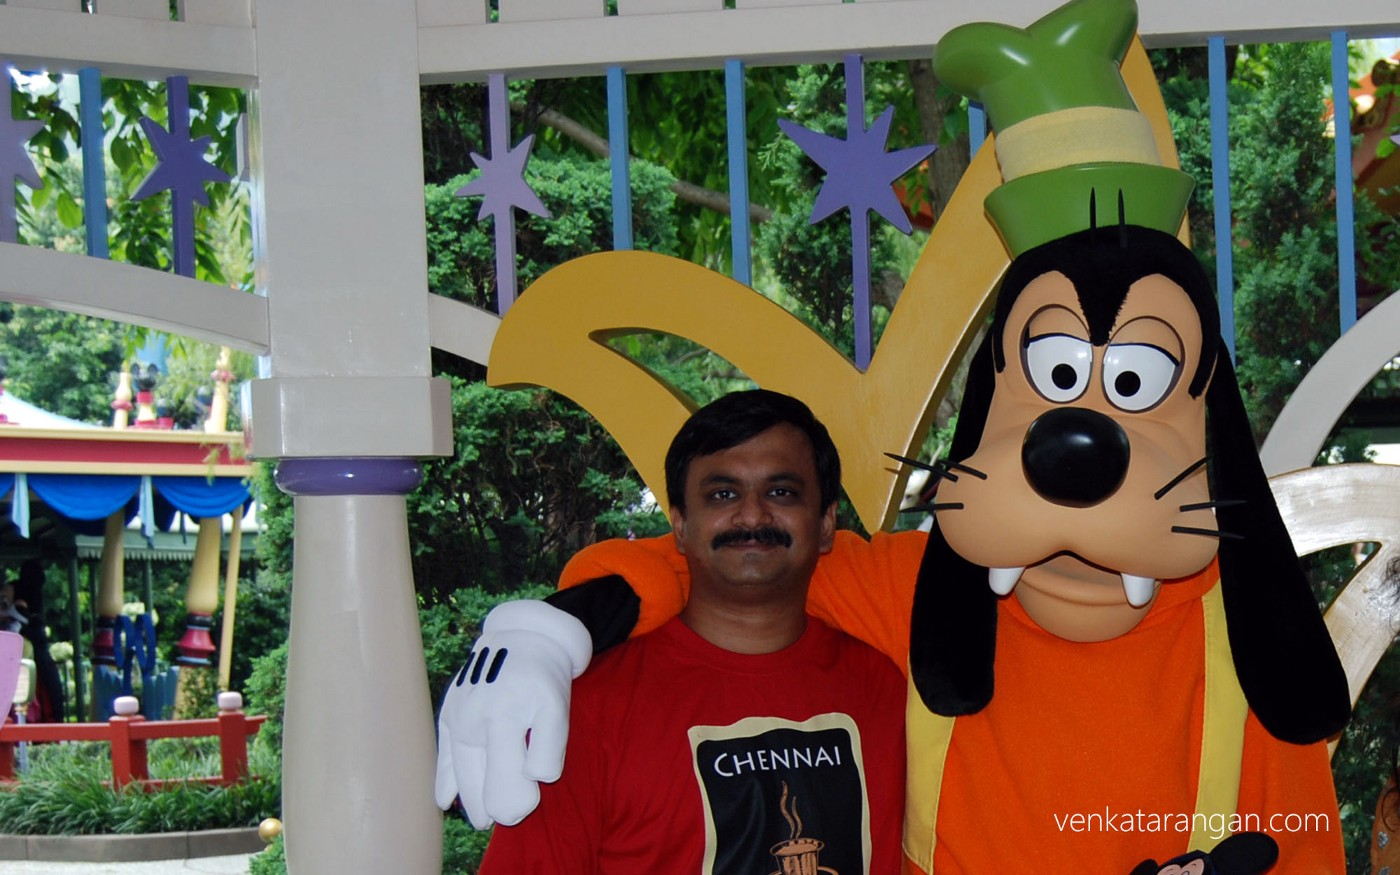 With my Childhood favourite Disney character - Goofy